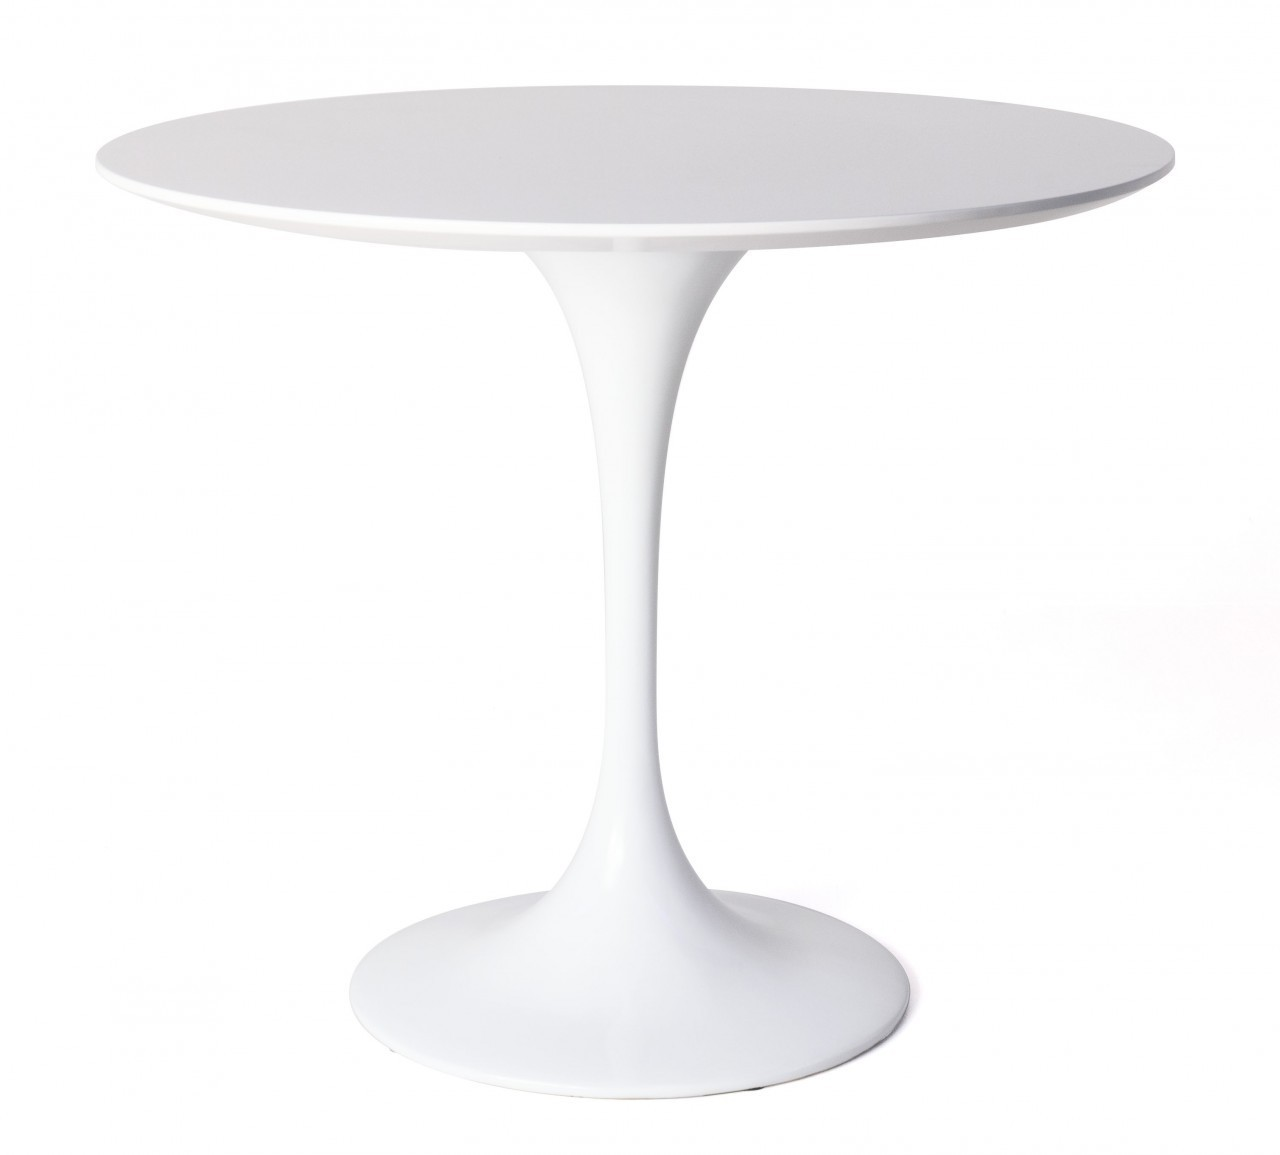 Eero Saarinen Dining Table Tulip Table Cm Design Dining Table - Eero saarinen tulip table and chairs